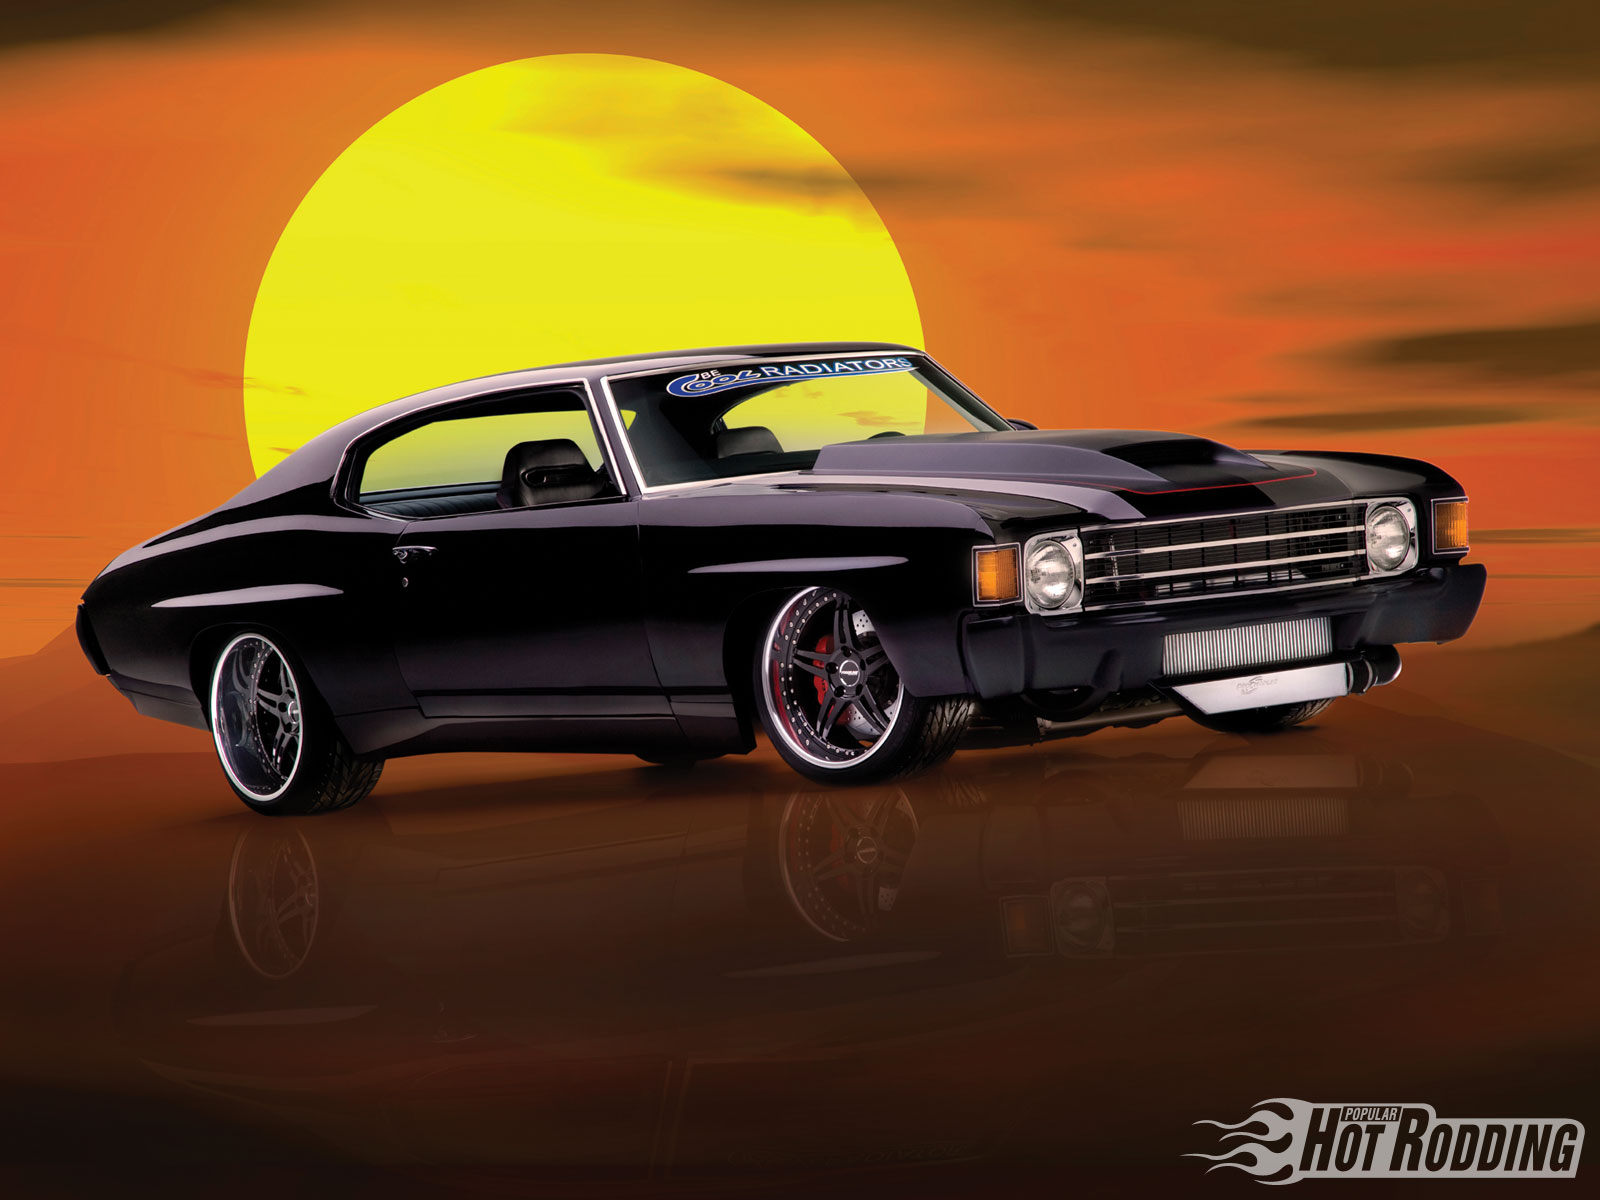 1972 Chevy Chevelle muscle cars hot rod wallpaper background 1600x1200